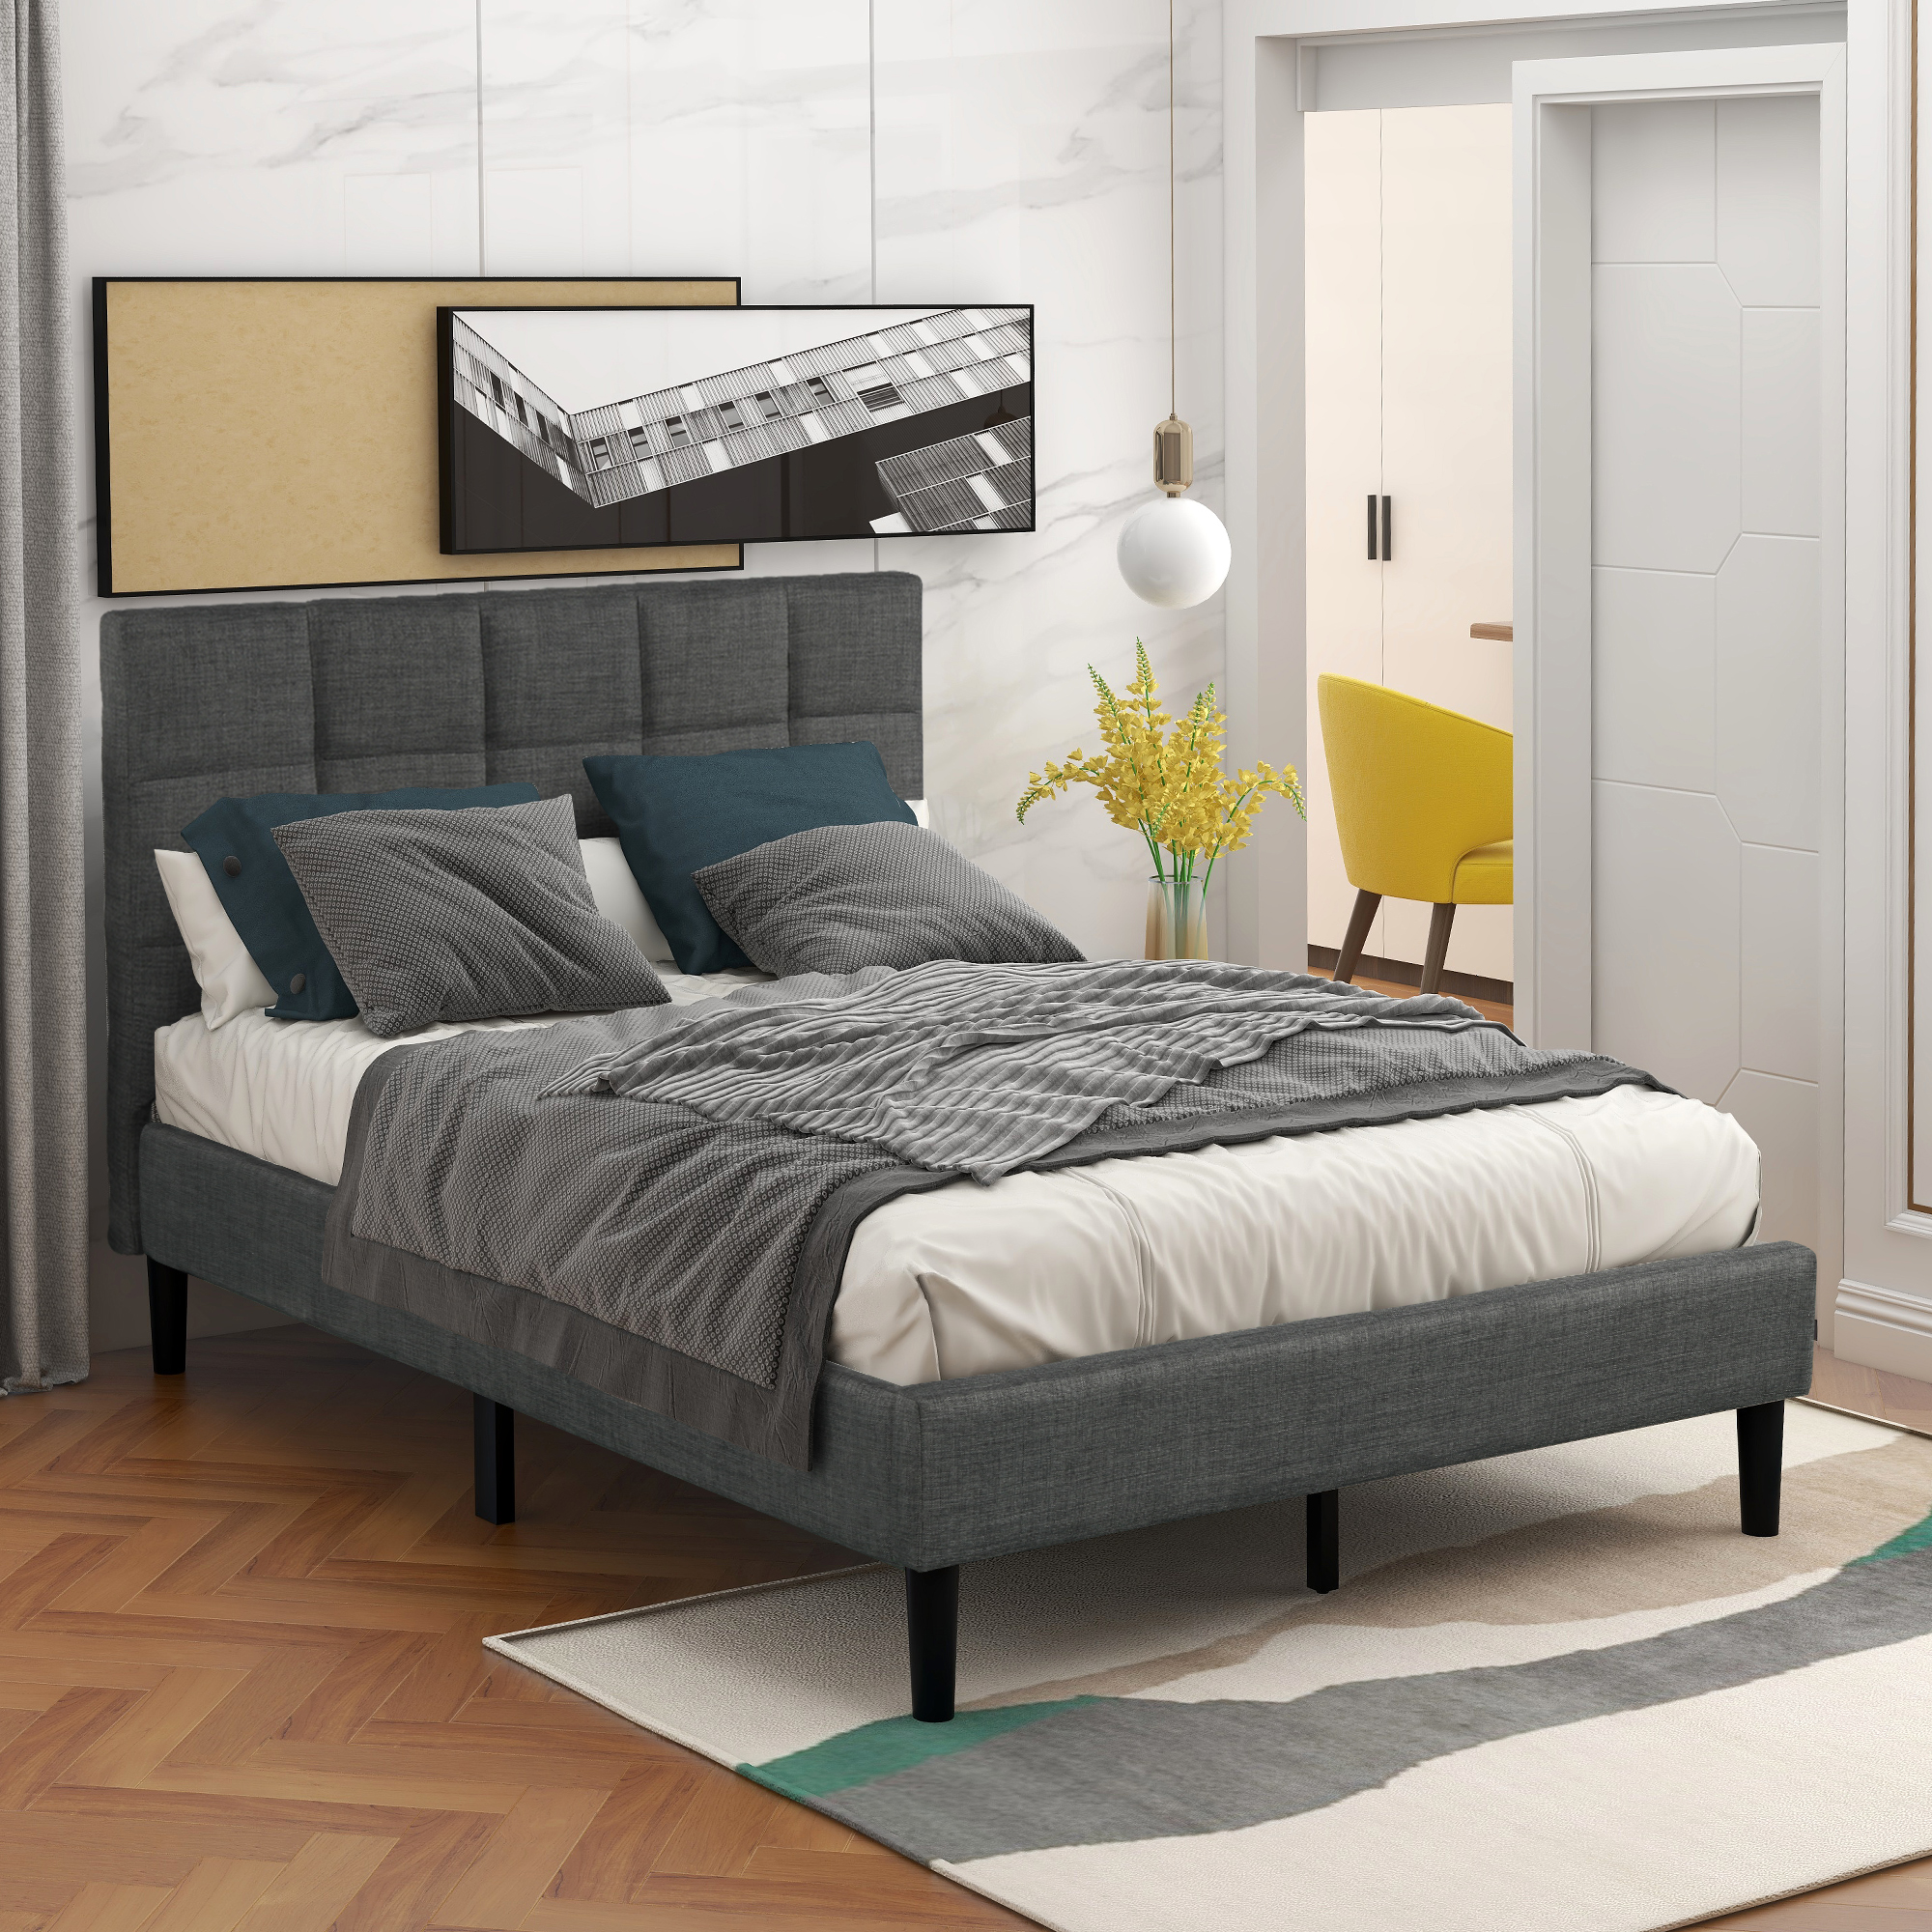 Gray Twin Bed Frame for Adults Kids, Modern Upholstered Platform